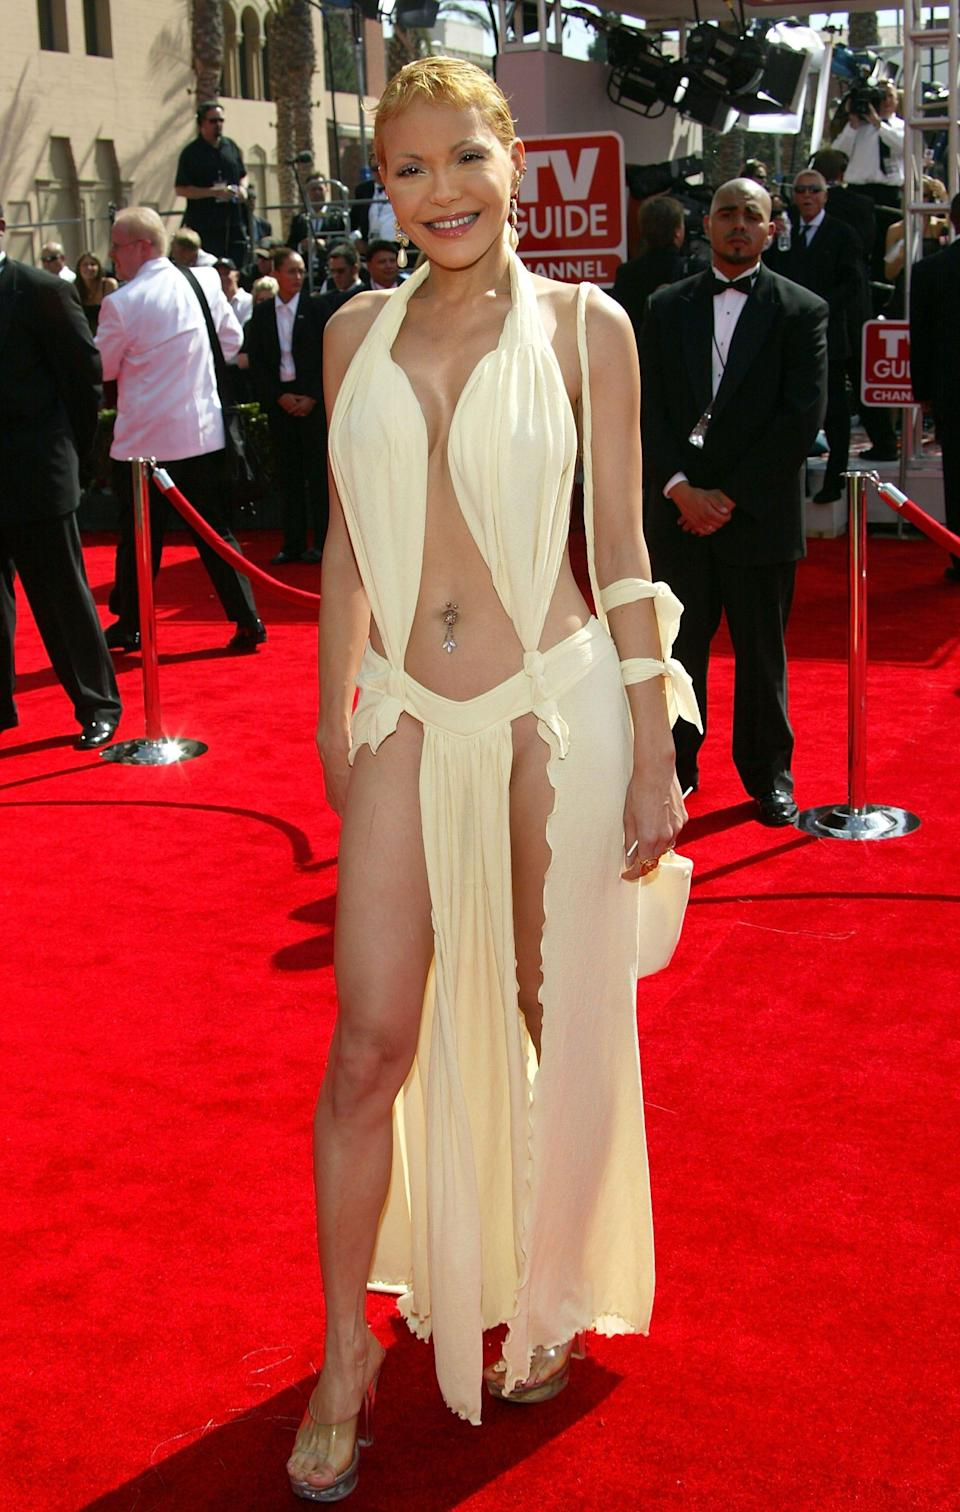 Tess Smith in a yellow dress that shows a lot of skin at the 2005 emmy awards